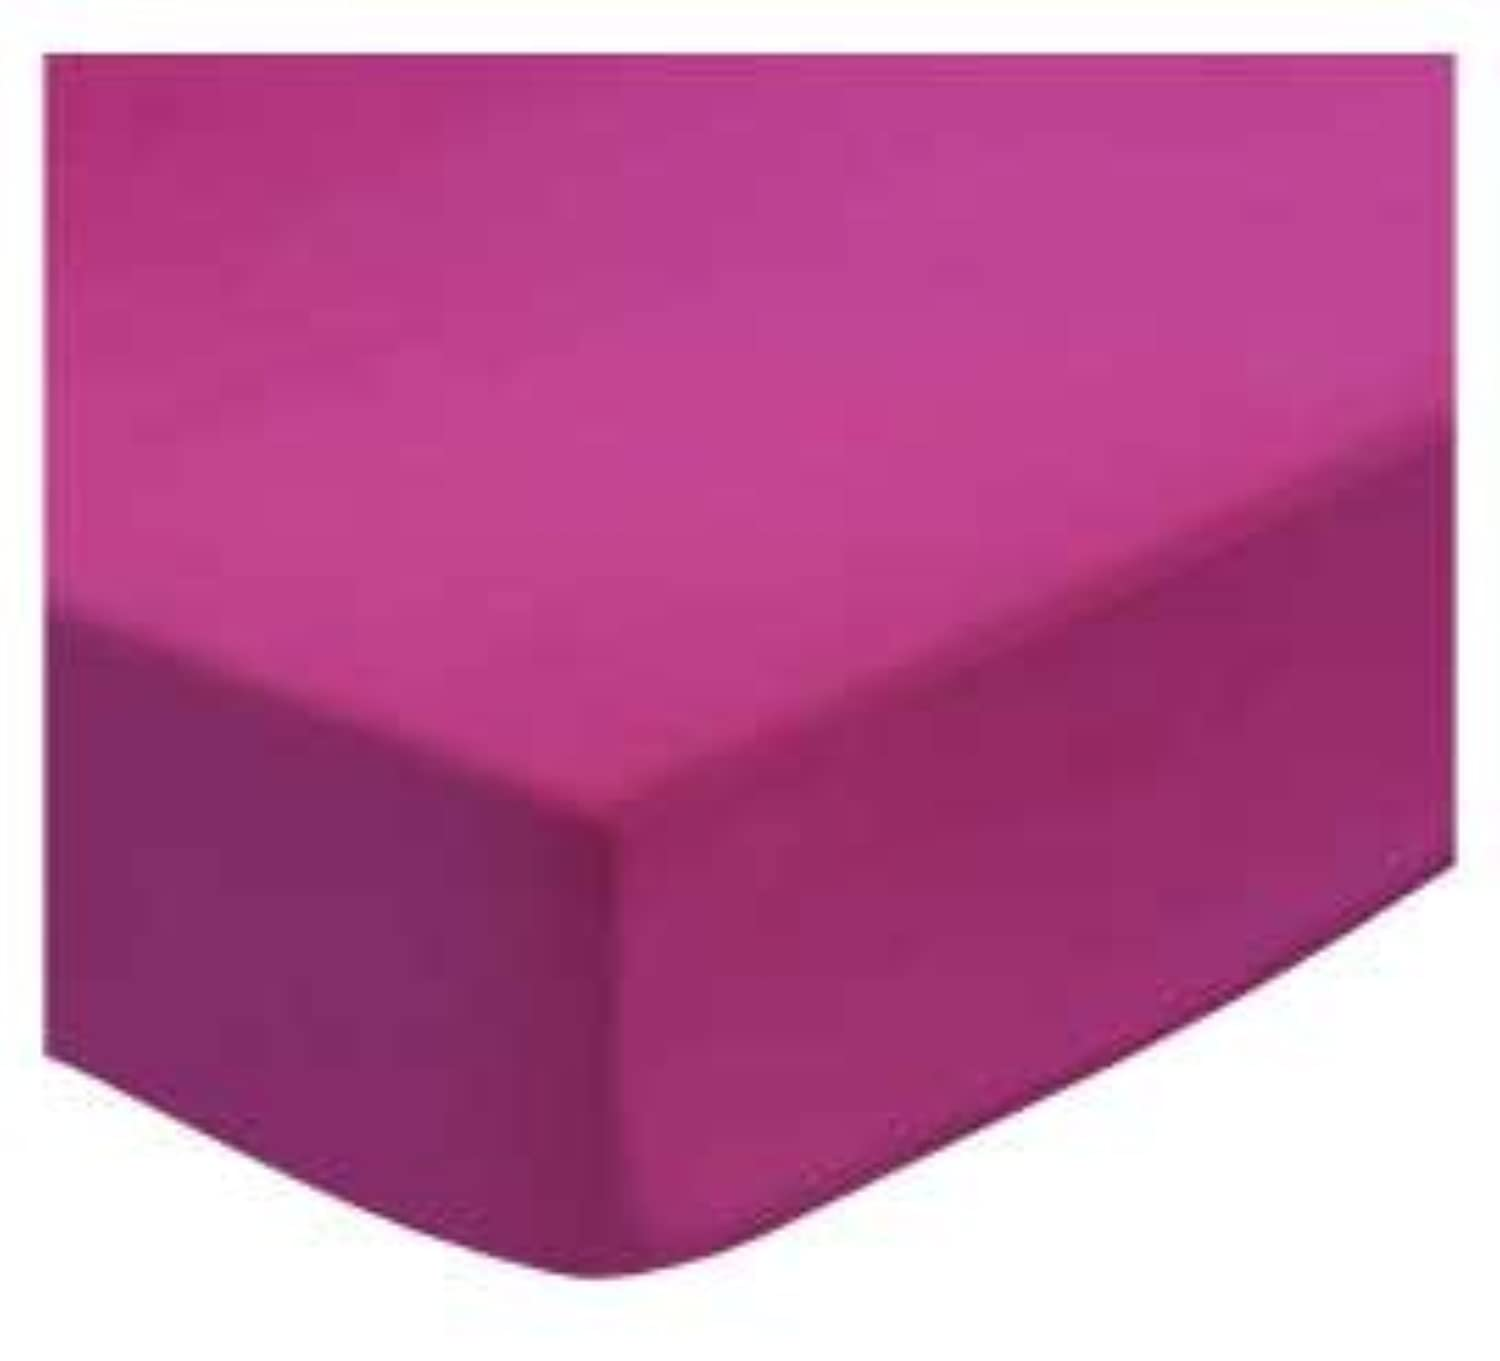 SheetWorld Fitted Pack N Play (Graco) Sheet - Hot Pink Woven - Made In USA by sheetworld